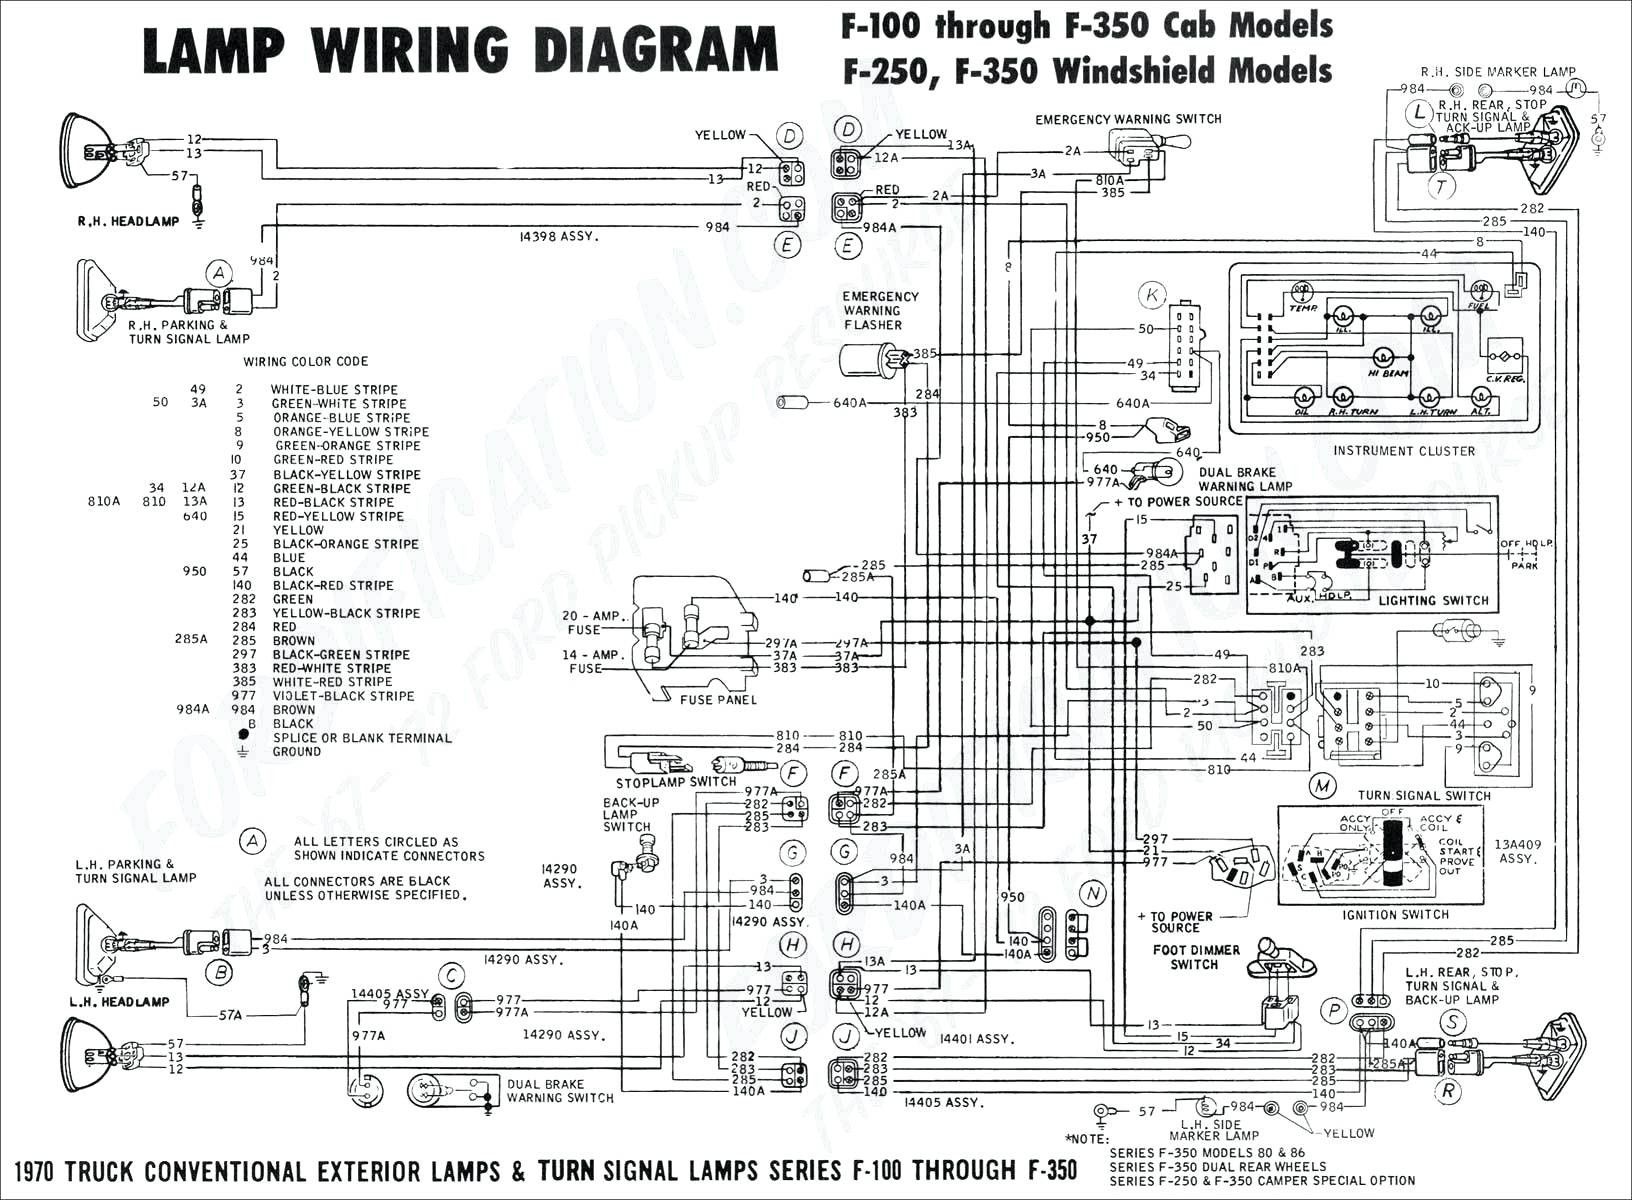 Trailer Wiring Diagram Ford Ranger on 89 ford ranger wiring diagram, 2001 ford explorer sport wiring diagram, 2003 ford excursion wiring diagram, 1997 ford ranger door panel removal, 1998 ford ranger wiring diagram, 2000 ford f-350 wiring diagram, 95 ford ranger wiring diagram, ford light switch diagram, 1997 ford ranger headlight, 2008 ford mustang wiring diagram, 1996 ford f-250 wiring diagram, 2002 ford explorer sport trac wiring diagram, 1993 ford ranger wiring diagram, 1997 ford ranger fuse panel, 97 ford ranger engine diagram, 1995 ford crown victoria wiring diagram, 1997 ford ranger sensor locations, 1997 ford ranger clutch safety switch, 96 ford ranger wiring diagram, 1997 ford e350 fuse panel diagram,